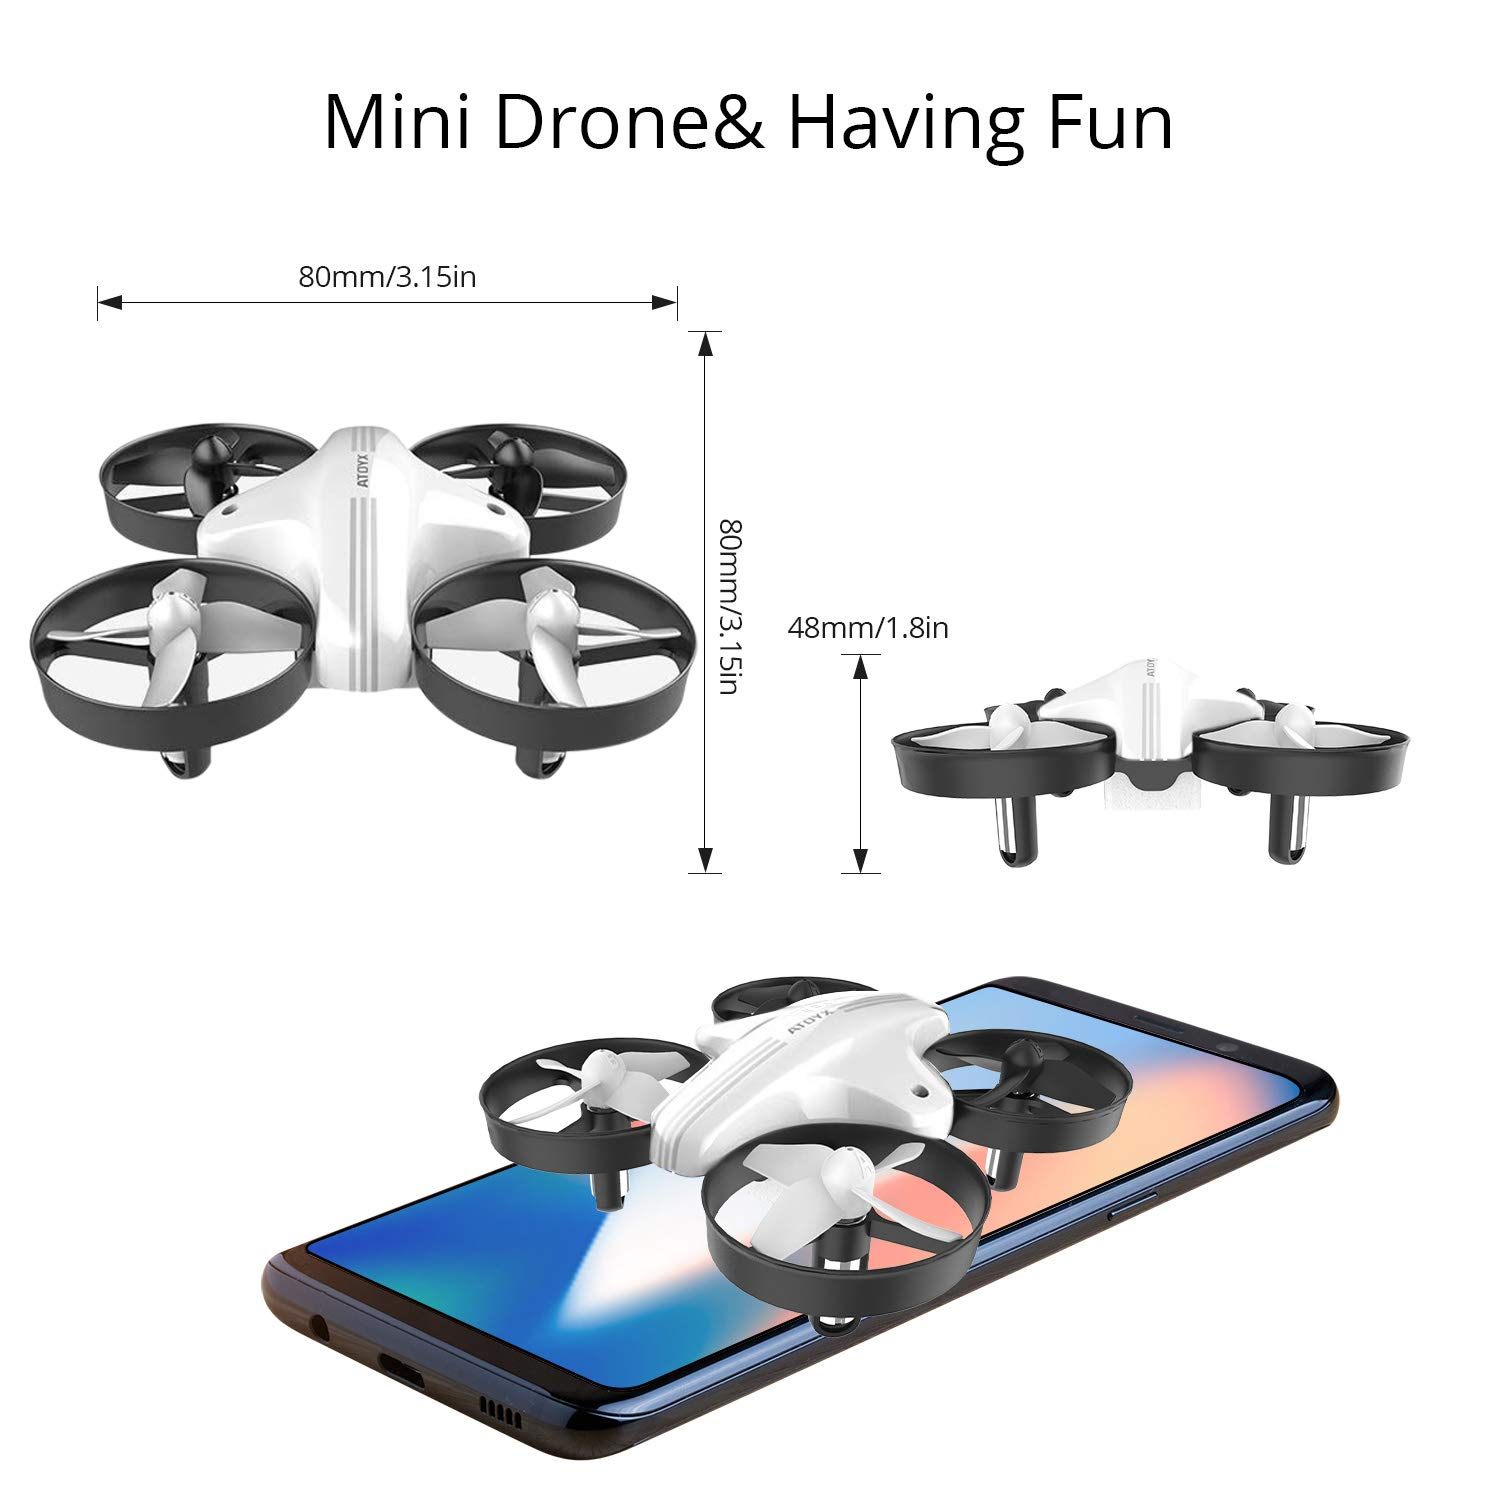 Portable Small Flying Drone is Boys and Girls Toys Gift 2 Batteries Quadcopter 2.4Ghz 6-Axis Gyro 4 Channels 2019 Upgraded Mini Drones for Kids and Beginners Easy to Fly